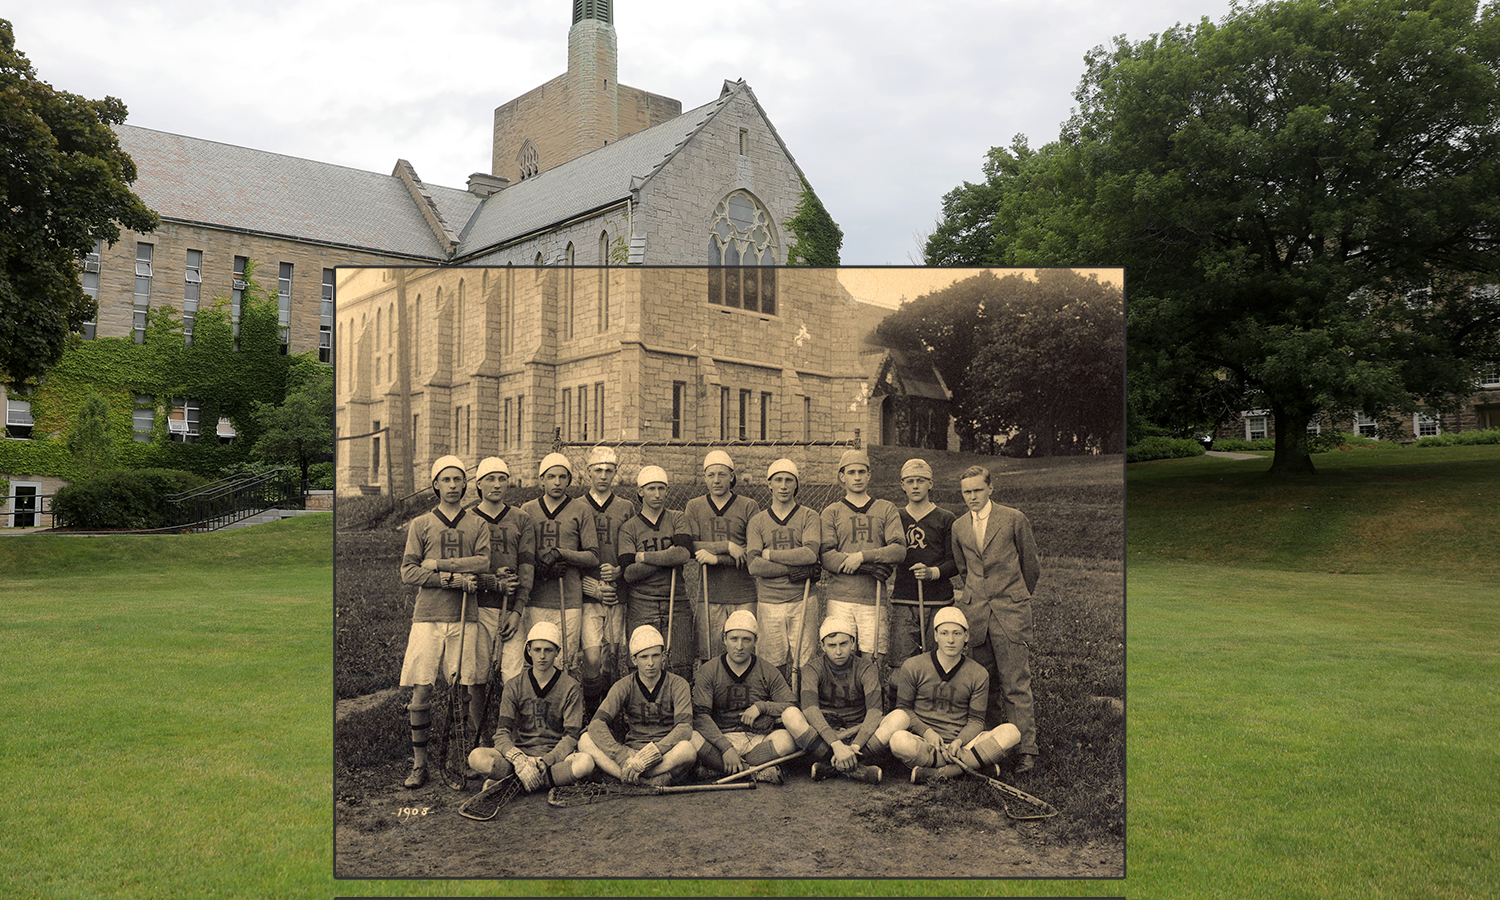 Pictured is the Hobart College 1908 Lacrosse team.